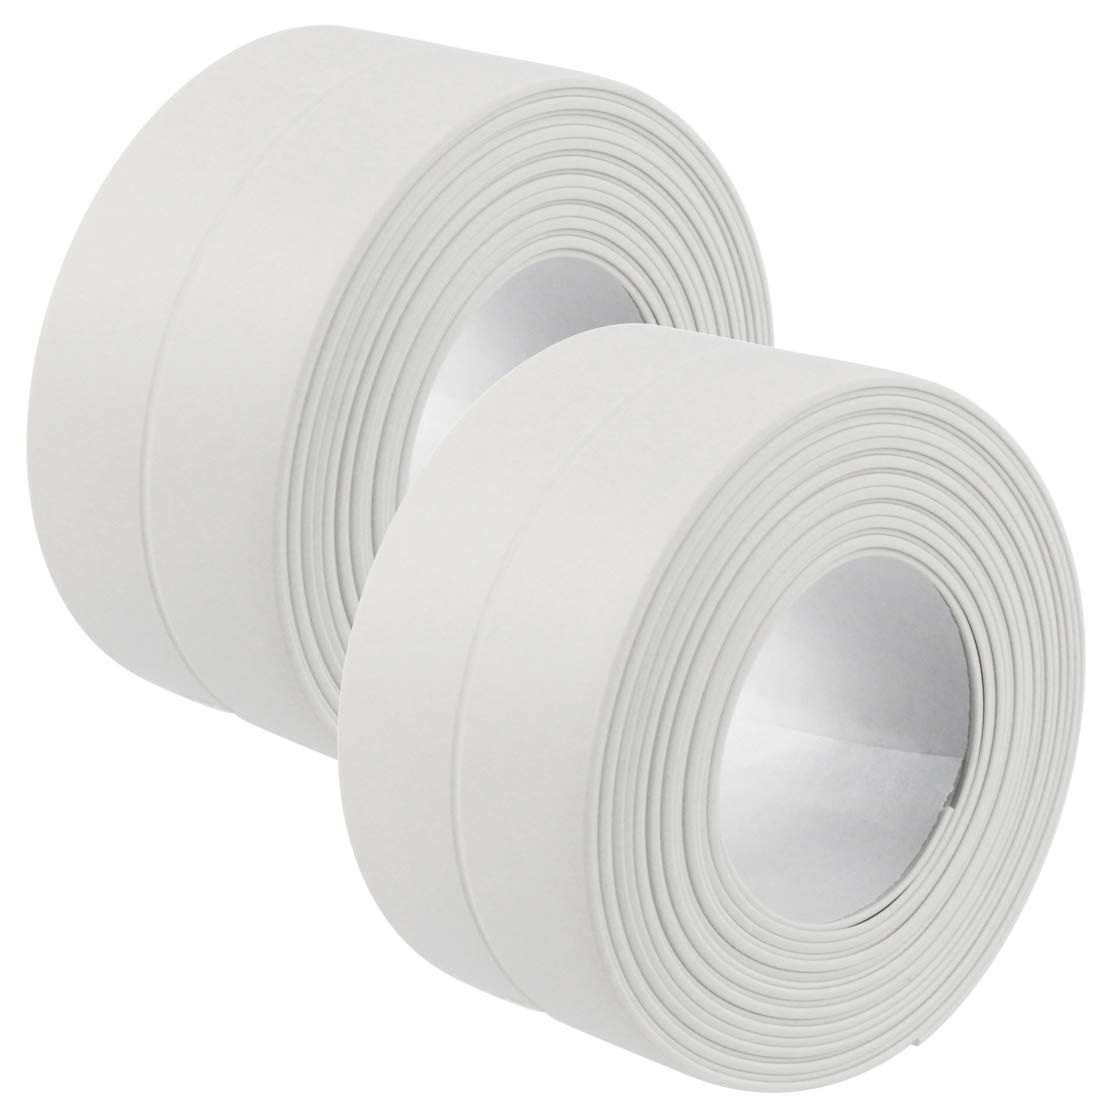 Lystaii 2pack PE Caulk Strip Sealing Tape Self-Adhesive Sealant Roll Trim for Bathroom Kitchen Toilet Shower Bathtub Sealant Wall Floor Tile Sealer Waterproof White 38mm x3.2m